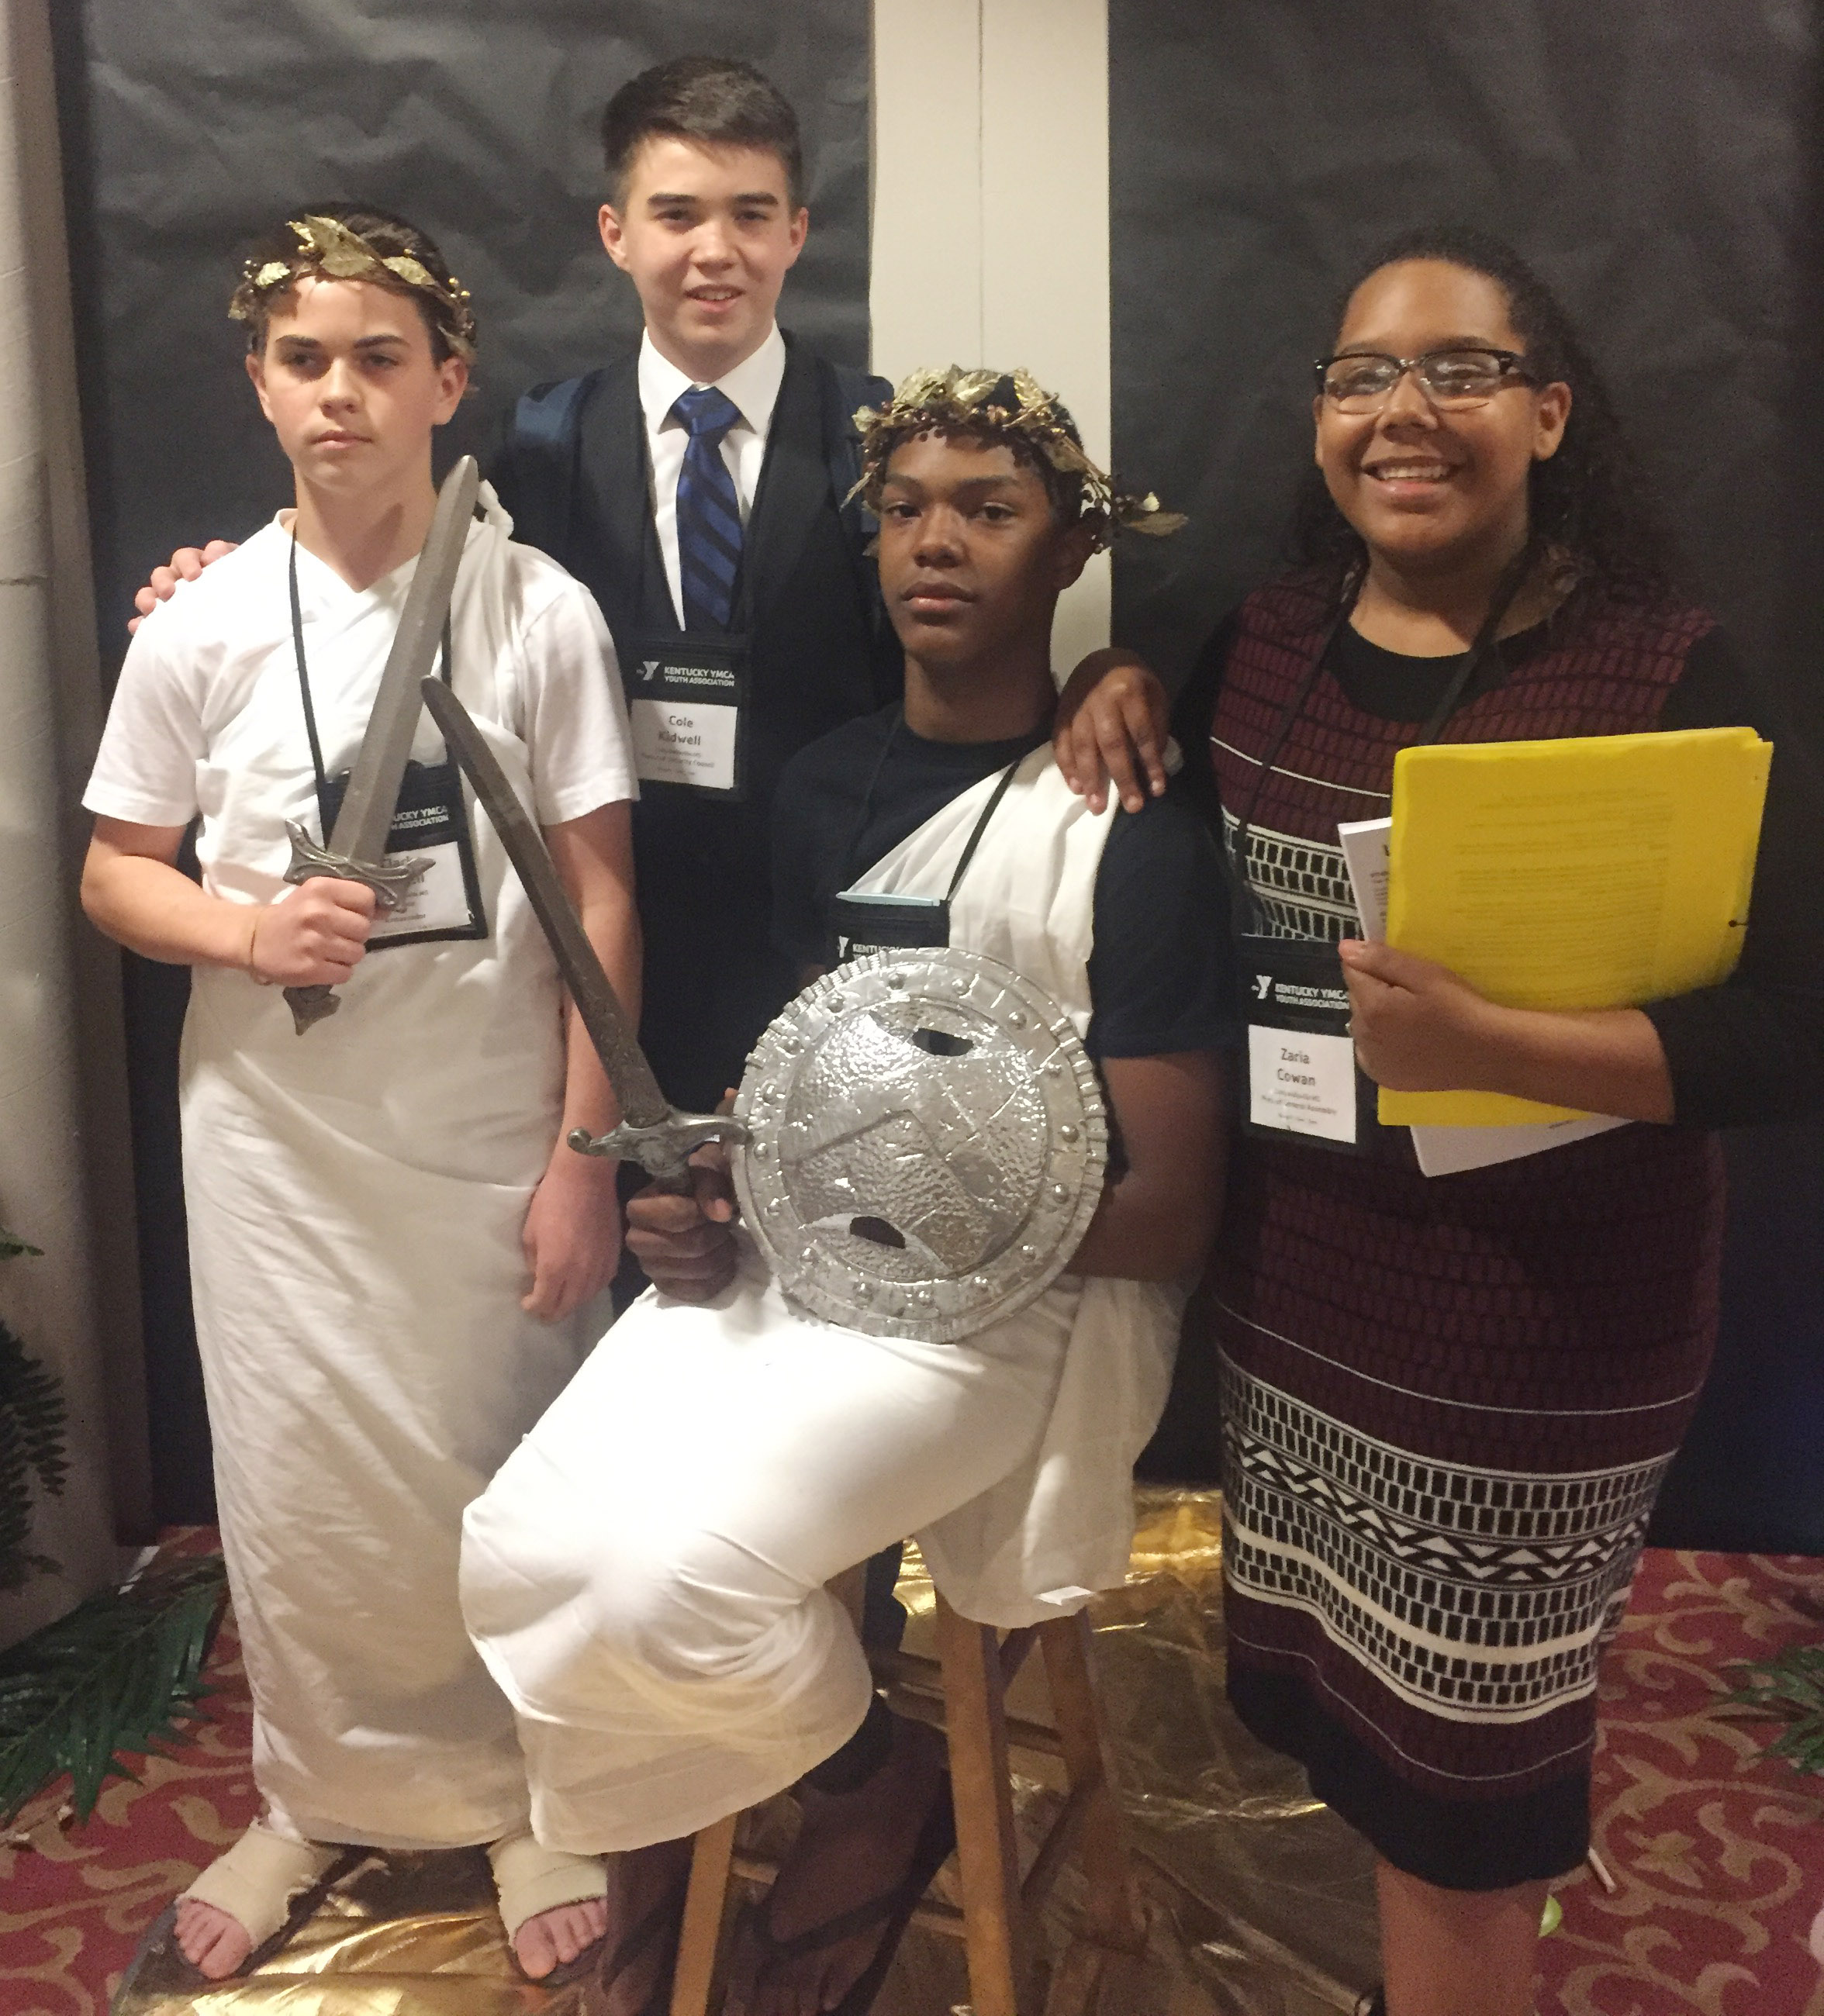 CMS eighth-graders Clark Kidwell and Zaquan Cowan, in front, dress for the school's Greece presentation with CHS freshmen Cole Kidwell and Zaria Cowan, who served in leadership roles at KUNA. Cowan was president of the United Nations General Assembly, and Kidwell served as president of the Security Council.